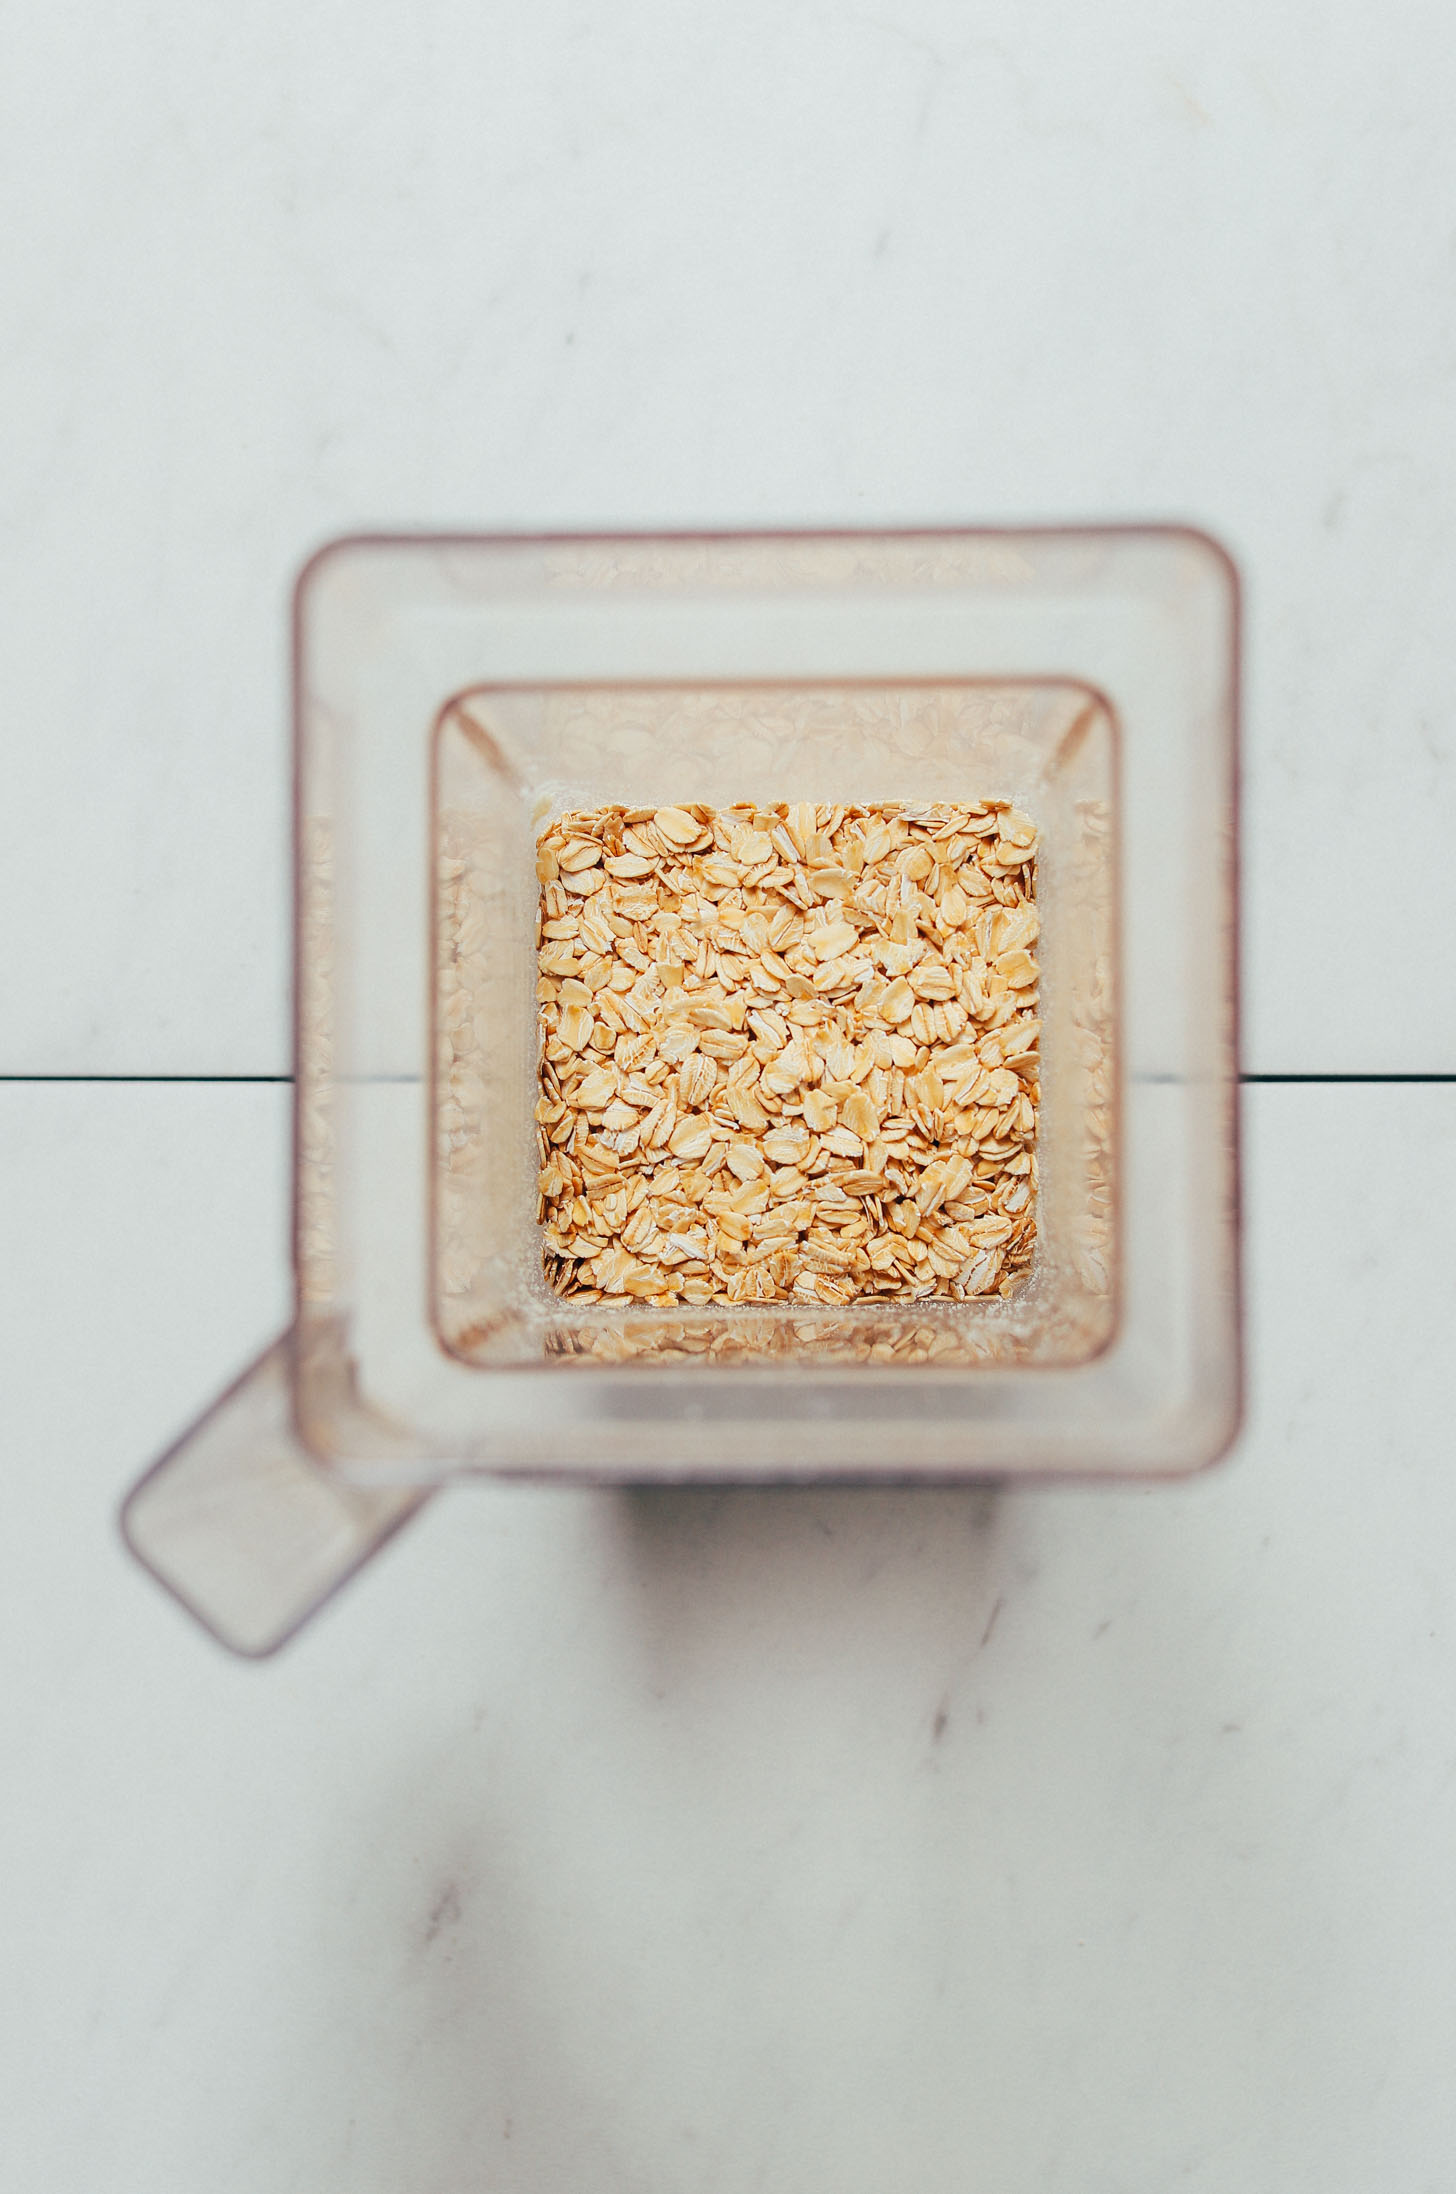 Blender of rolled oats for making homemade oat flour